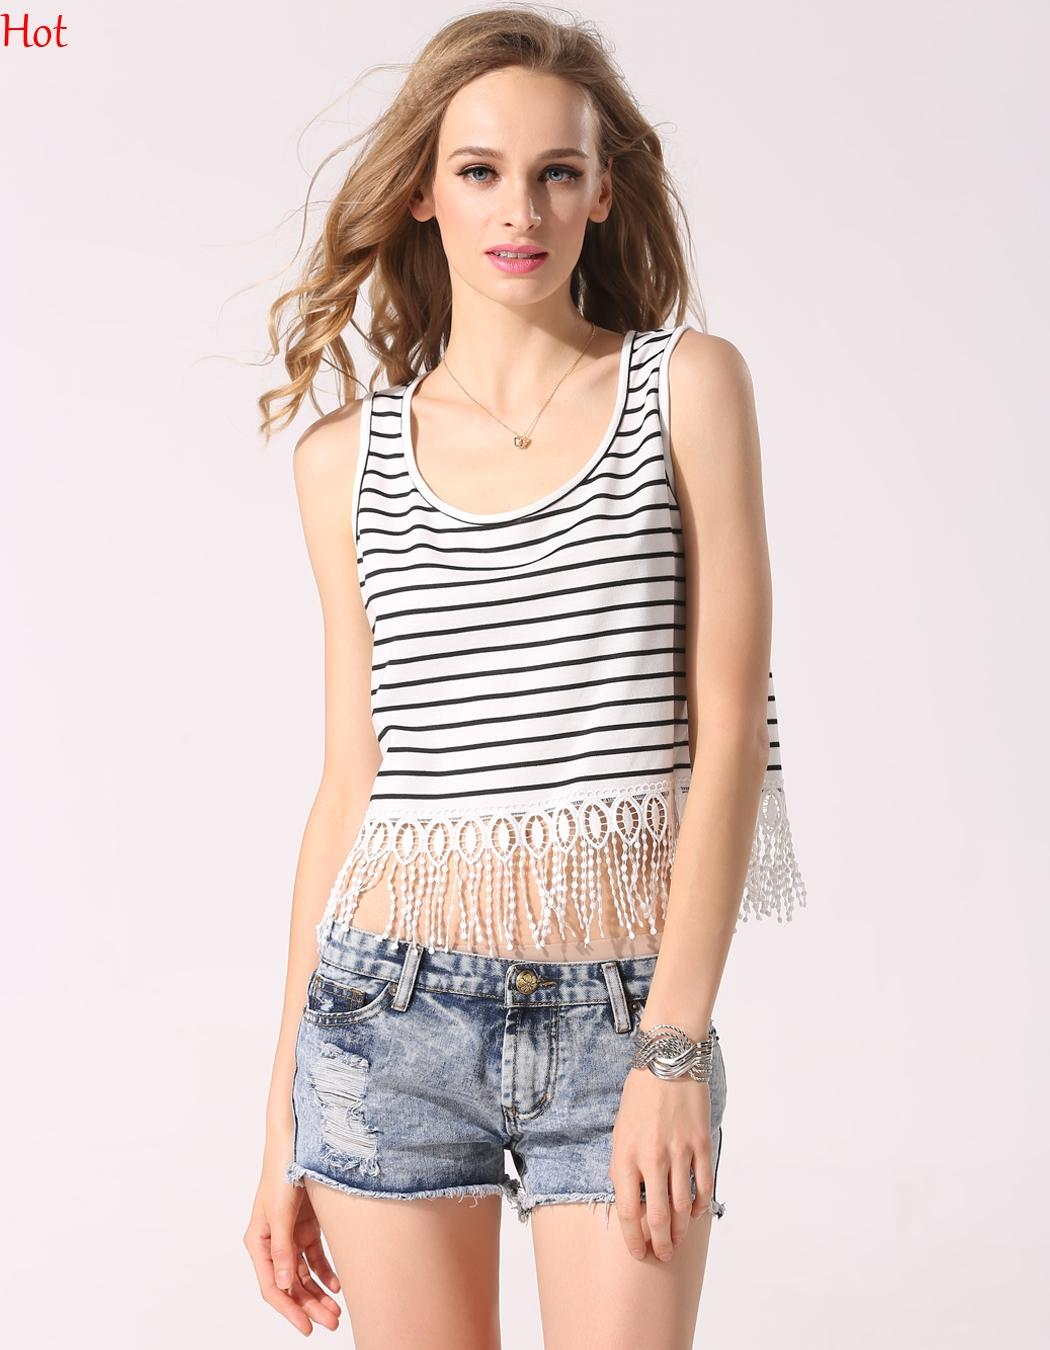 cbf1d737cf00 Hot New 2016 Women Tank Top O Neck Sleeveless Casual Camisole Top Striped  T-shirts Crochet Lace Tassel Fringe Crop Top Vest Blusas YC000308